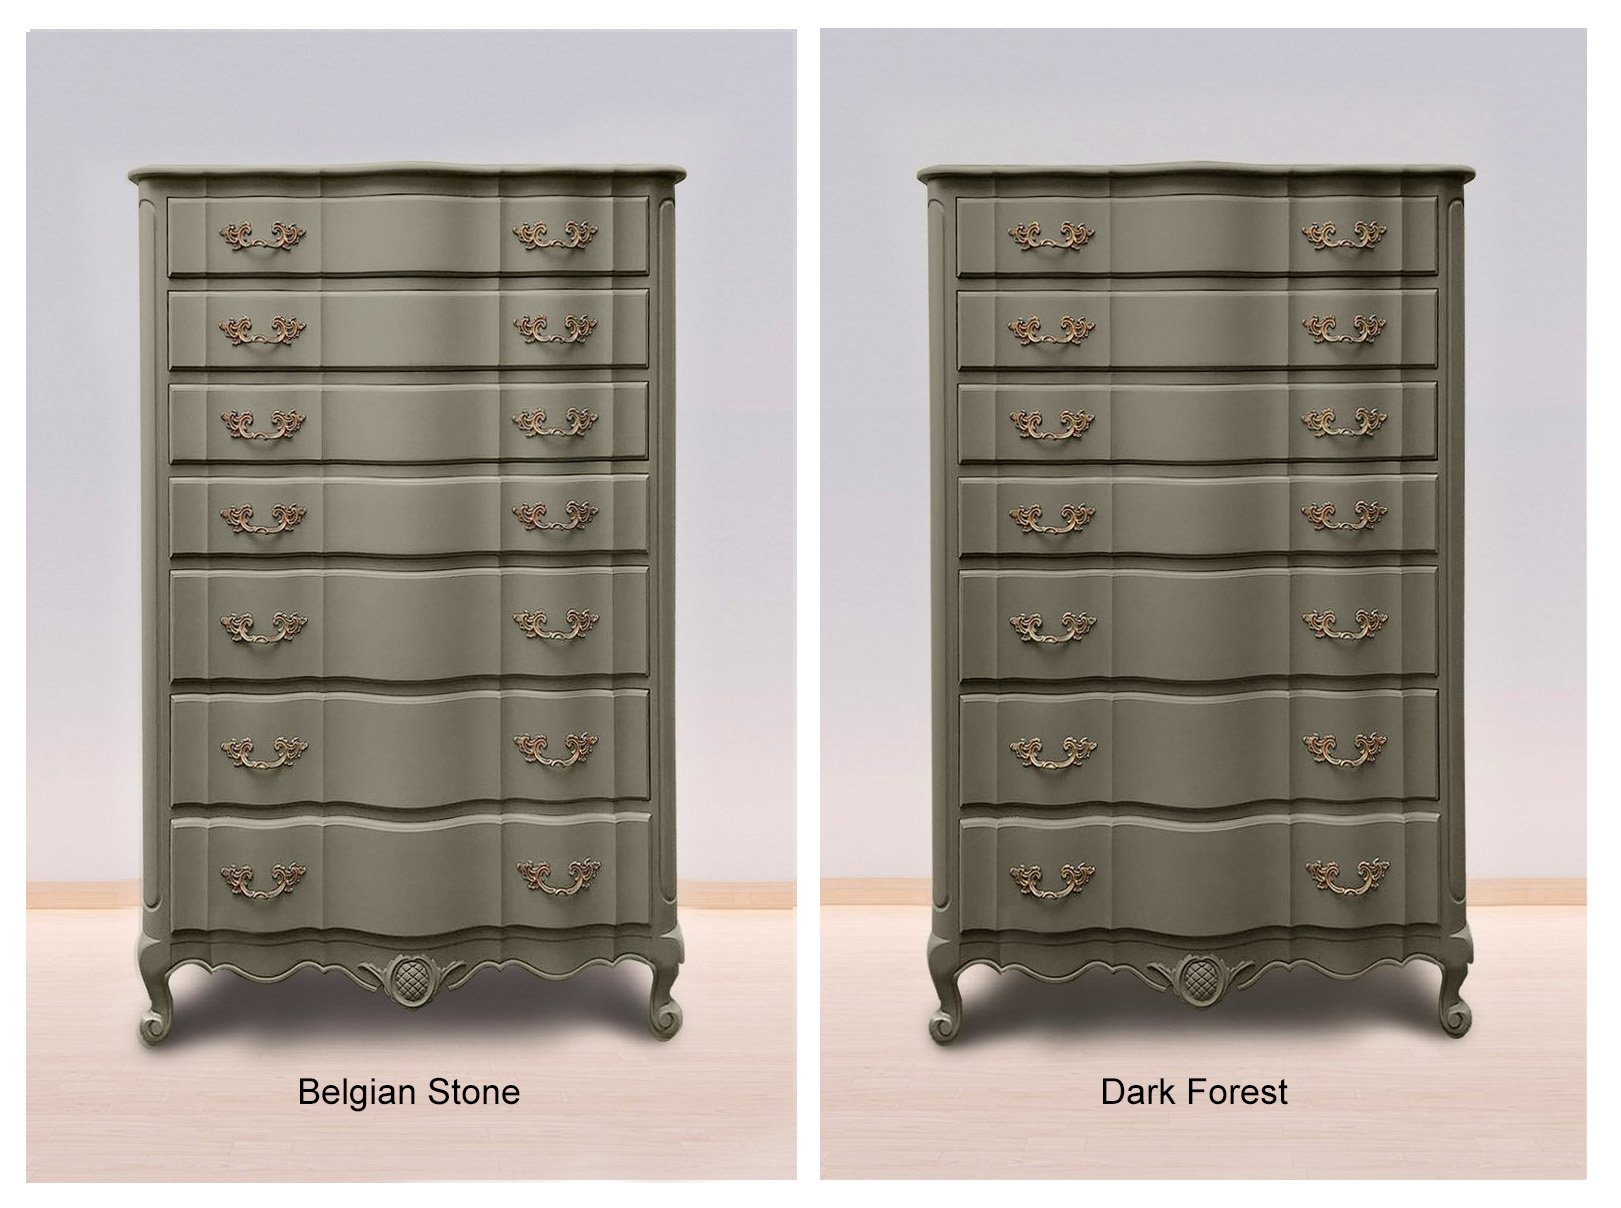 Belgian Stone & Dark Forest